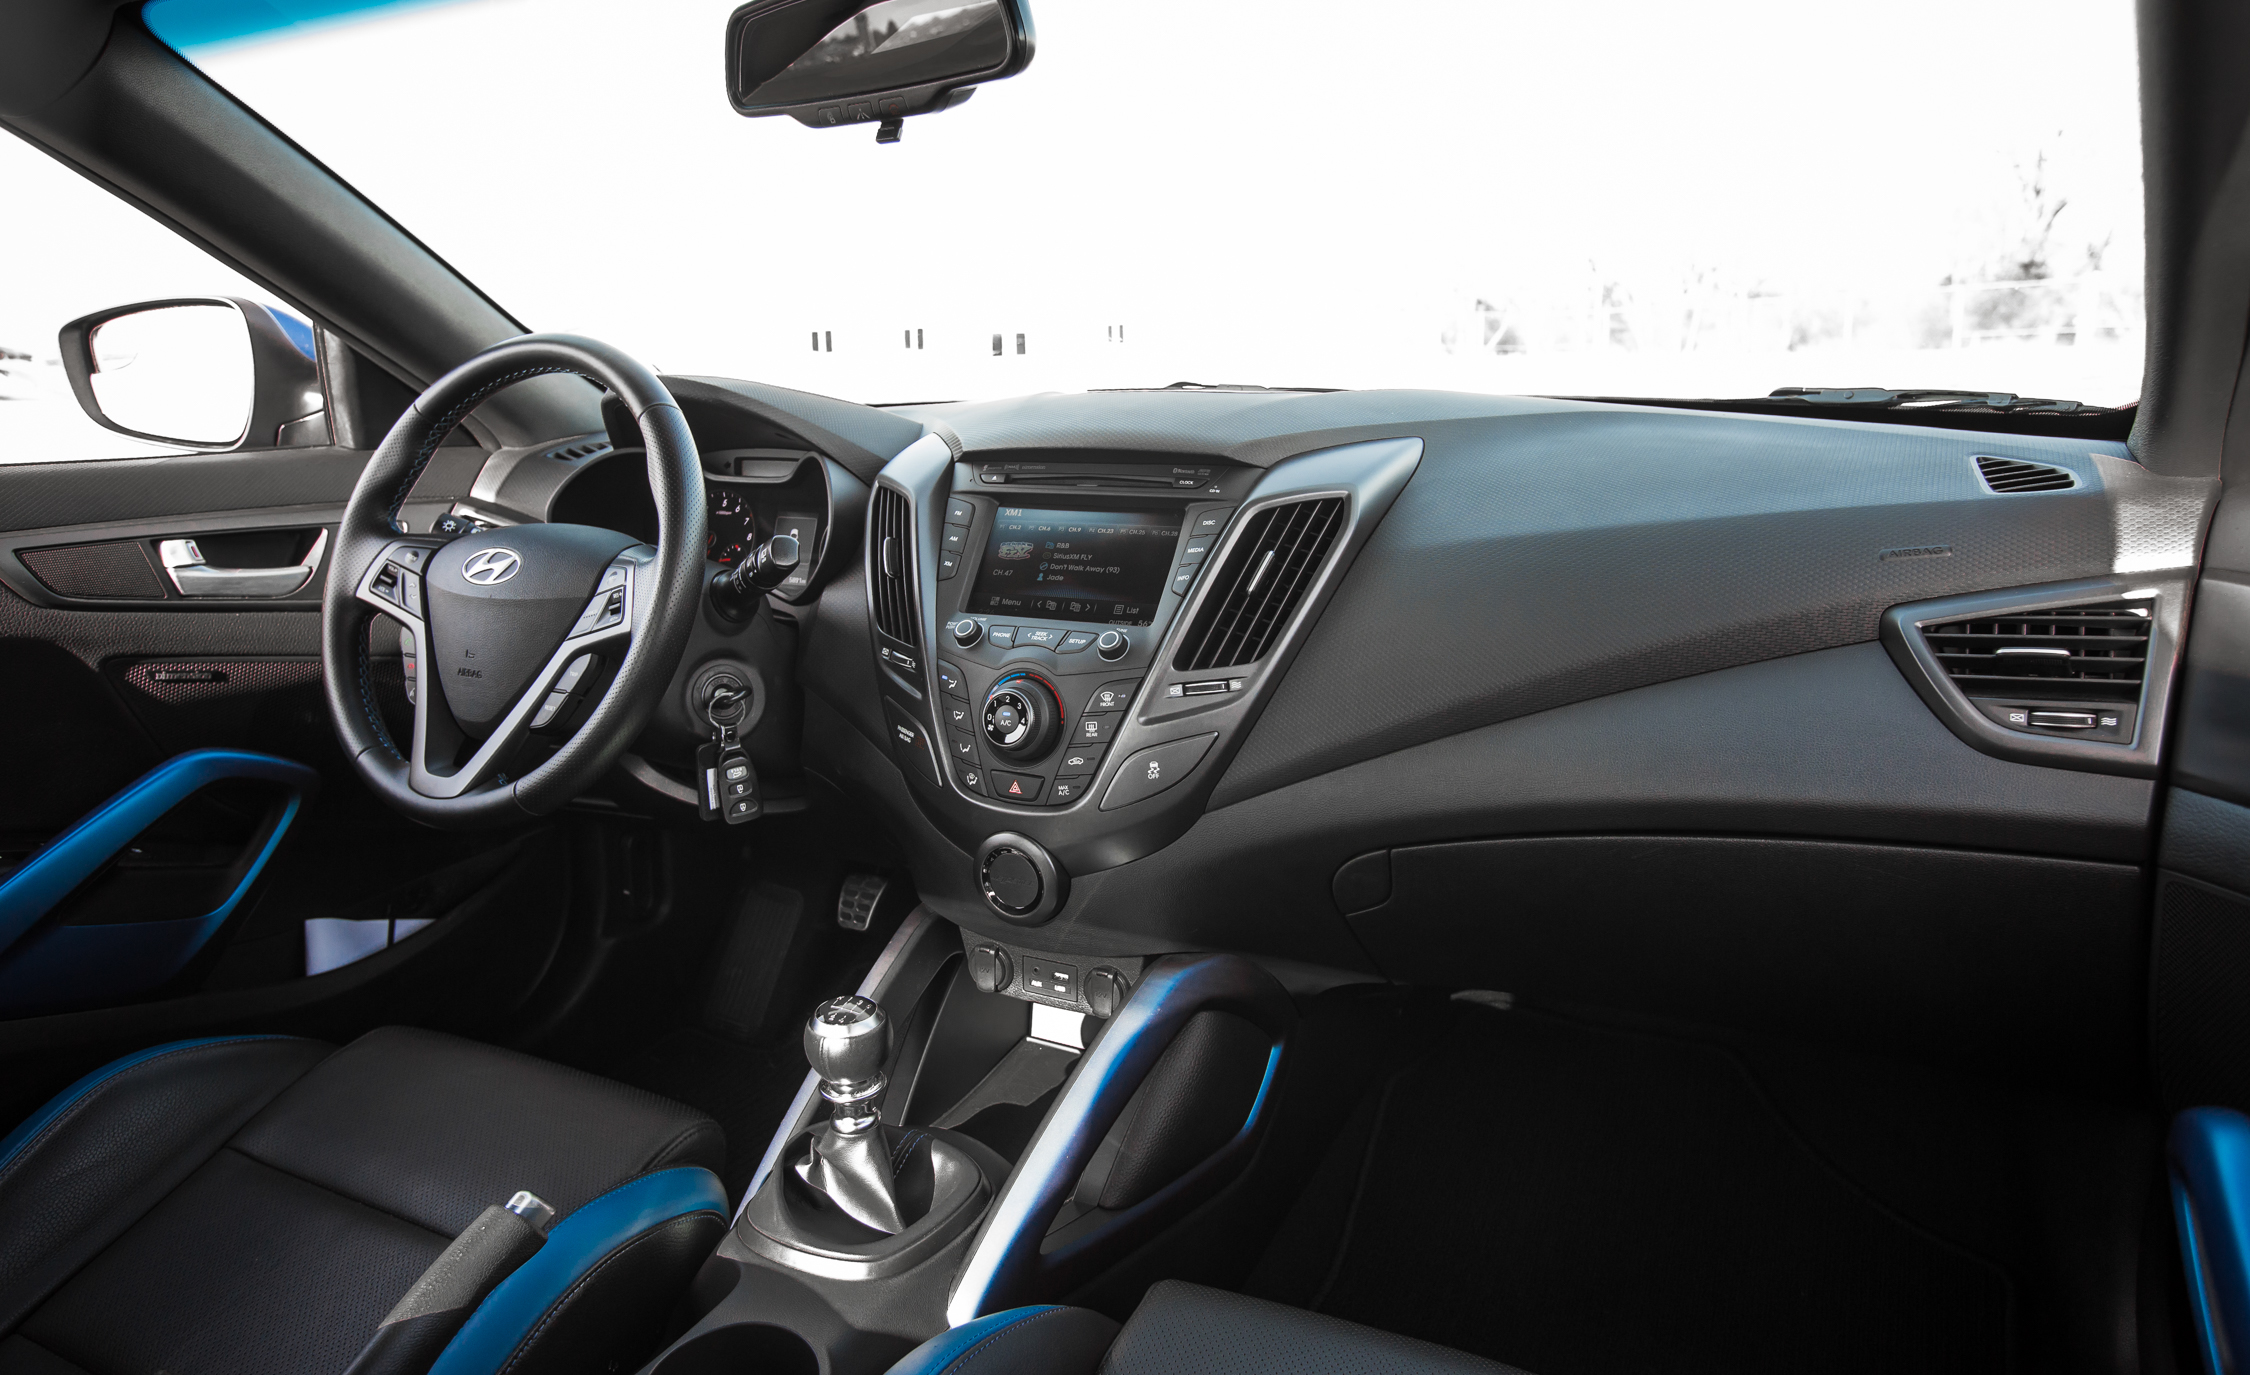 2016 Hyundai Veloster Turbo Rally Edition (Photo 22 of 28)